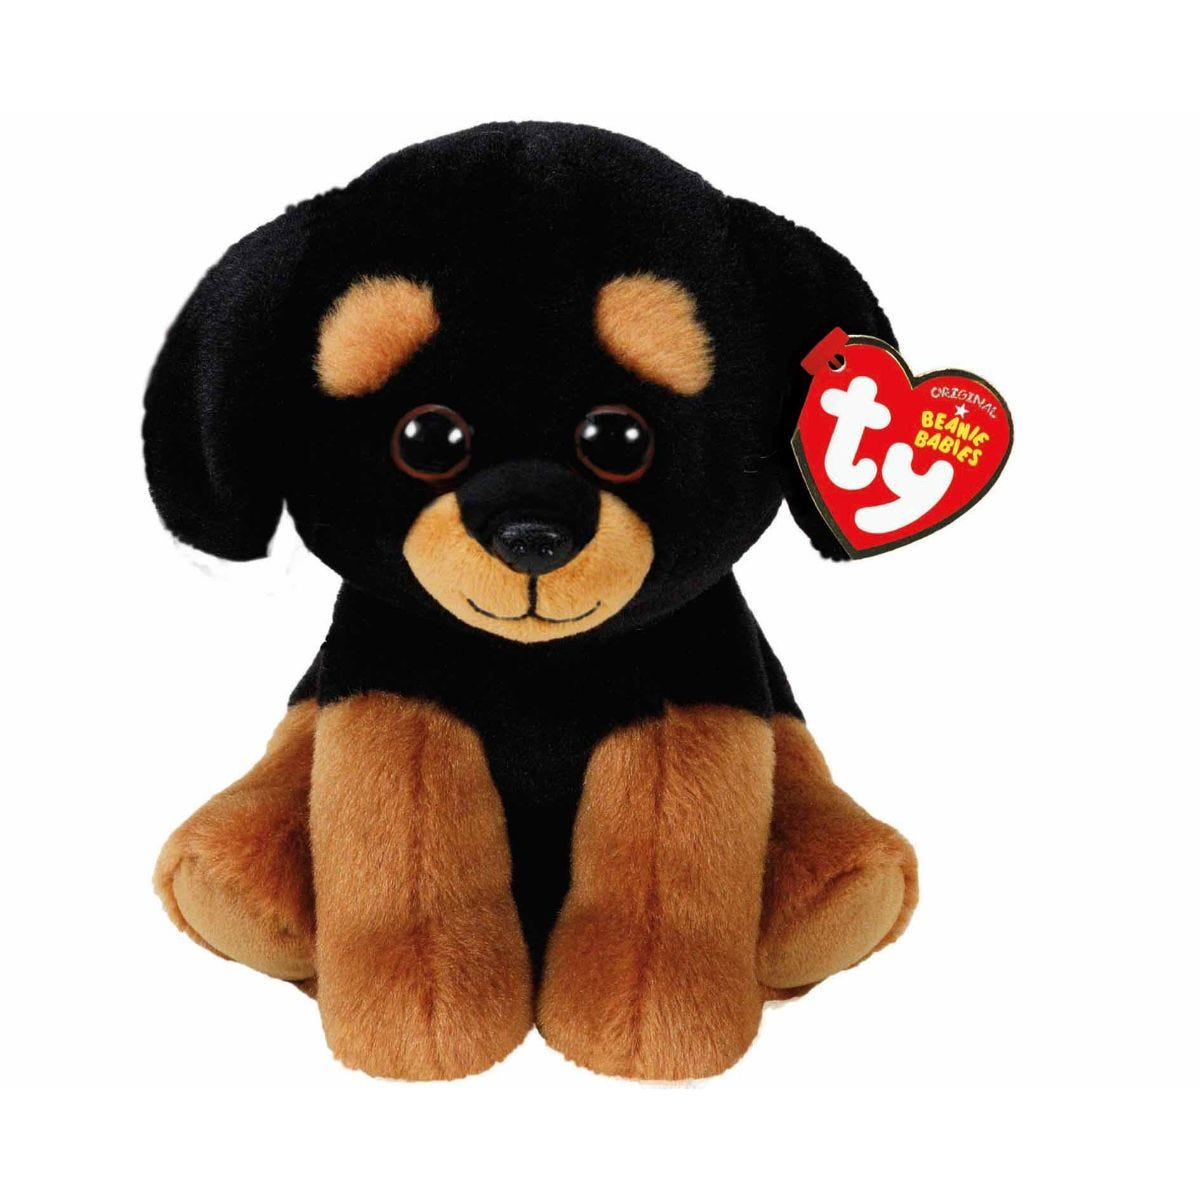 Image of Ty Trevor Rottweiler Beanie Baby Cuddly Toy